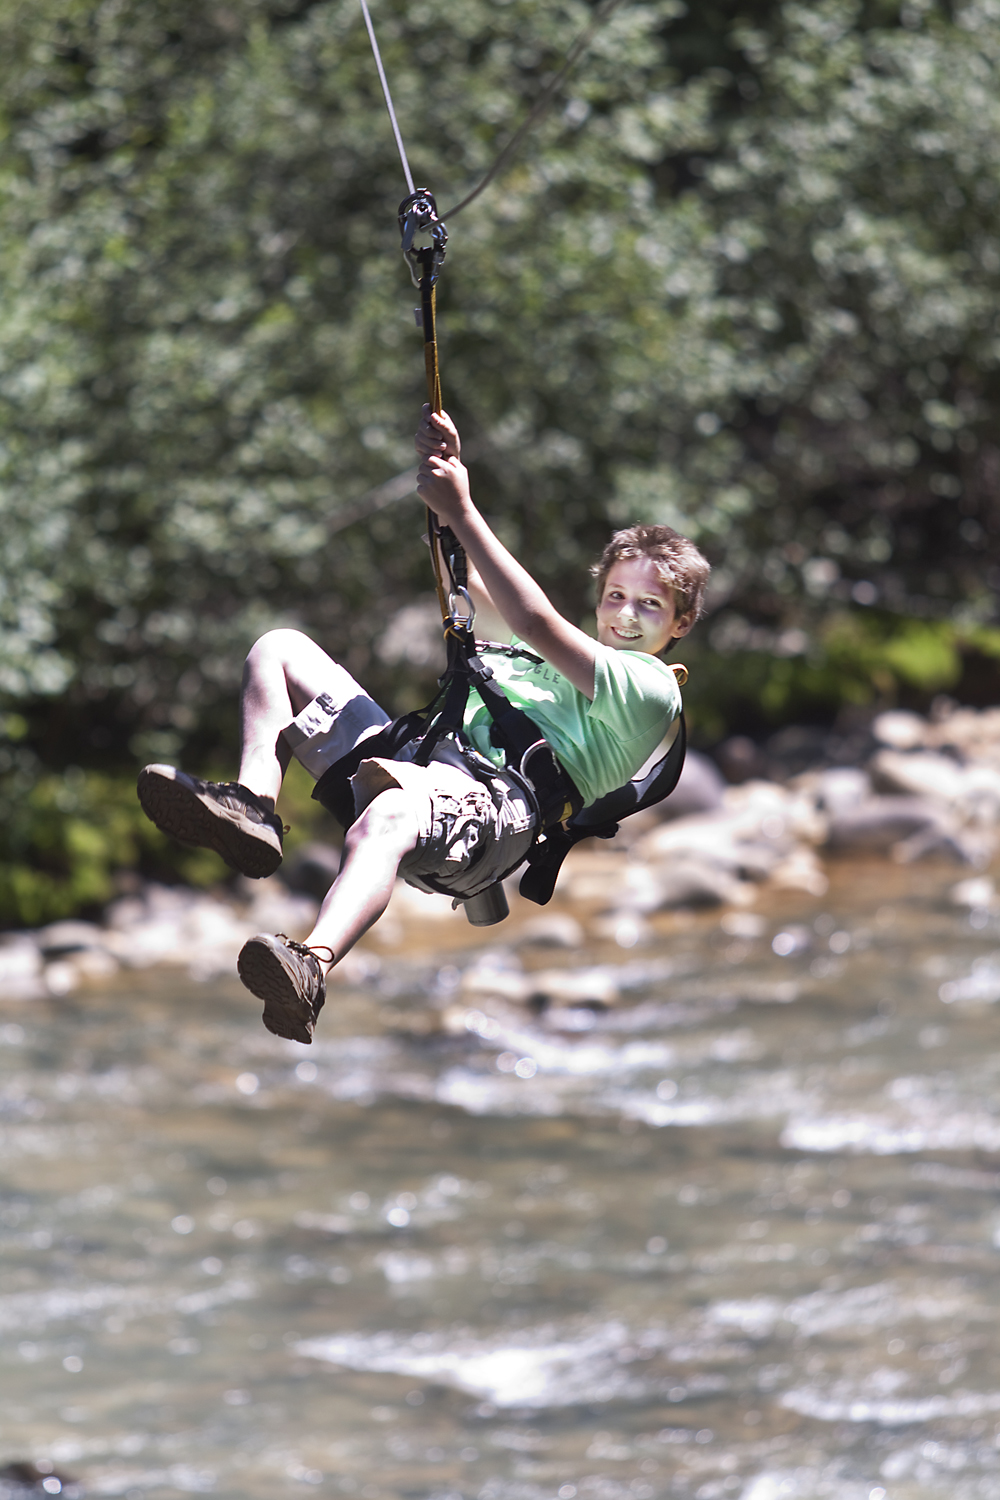 A boy ziplines over the Animas River at Soaring Tree Top Adventures.